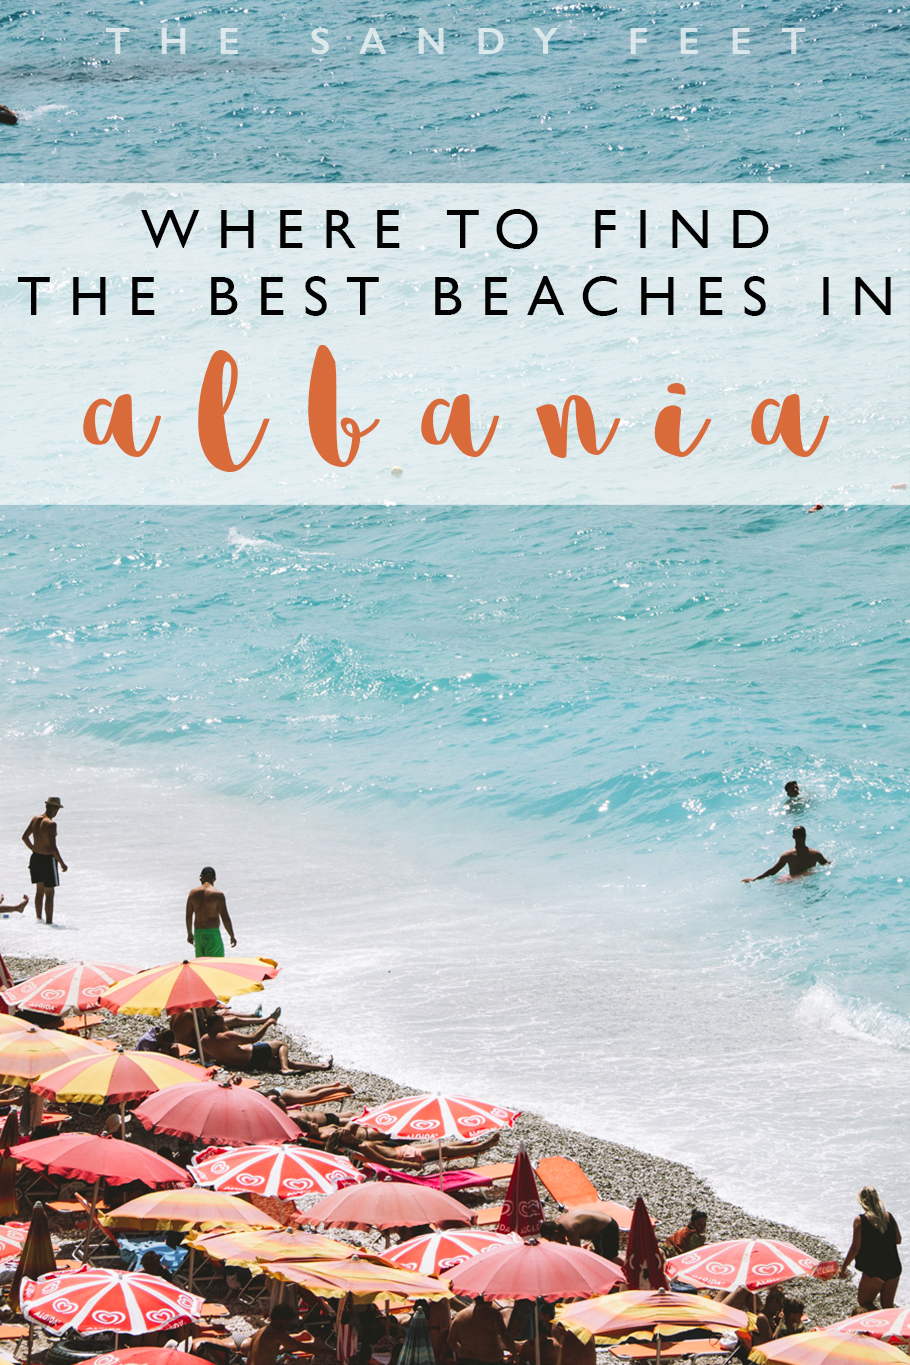 The Ultimate Guide To The Albanian Riviera: Where You'll Find The Best Beaches In Albania, as well as where to stay, eat and how to get around! Visit the famous beaches of Himara, Saranda and Ksamil, as well as a few secret beaches dotted along the coast.